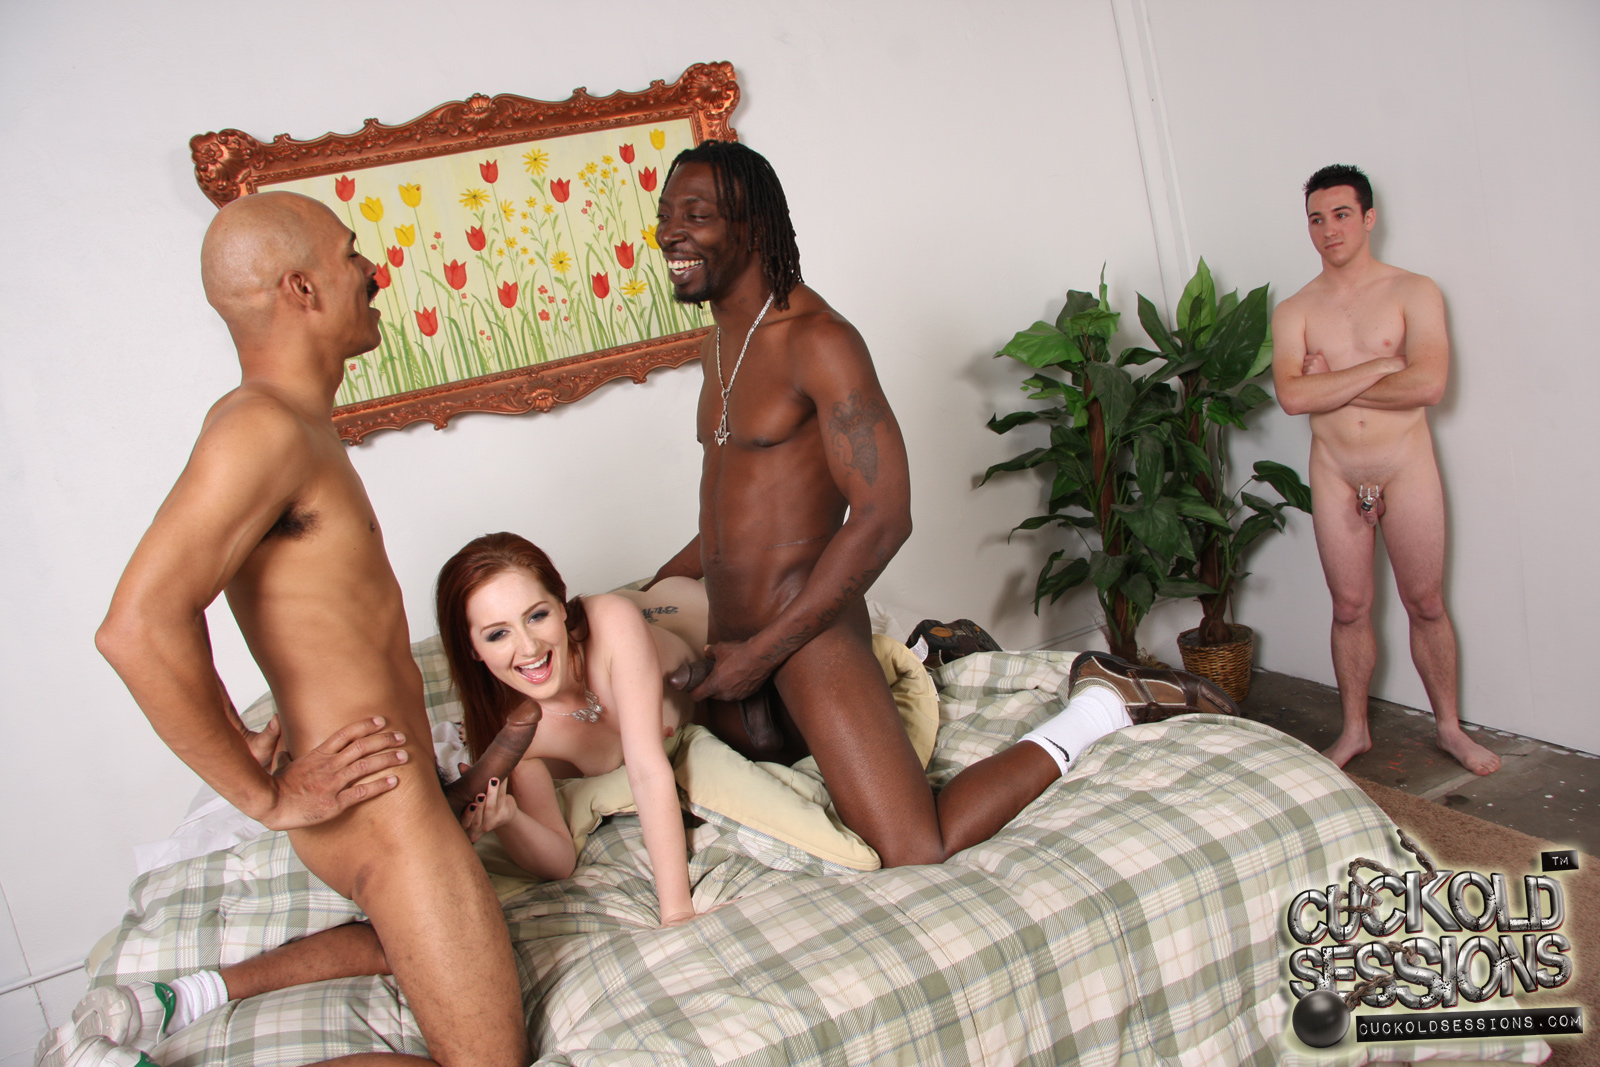 galleries cuckoldsessions content cameron love pic 07